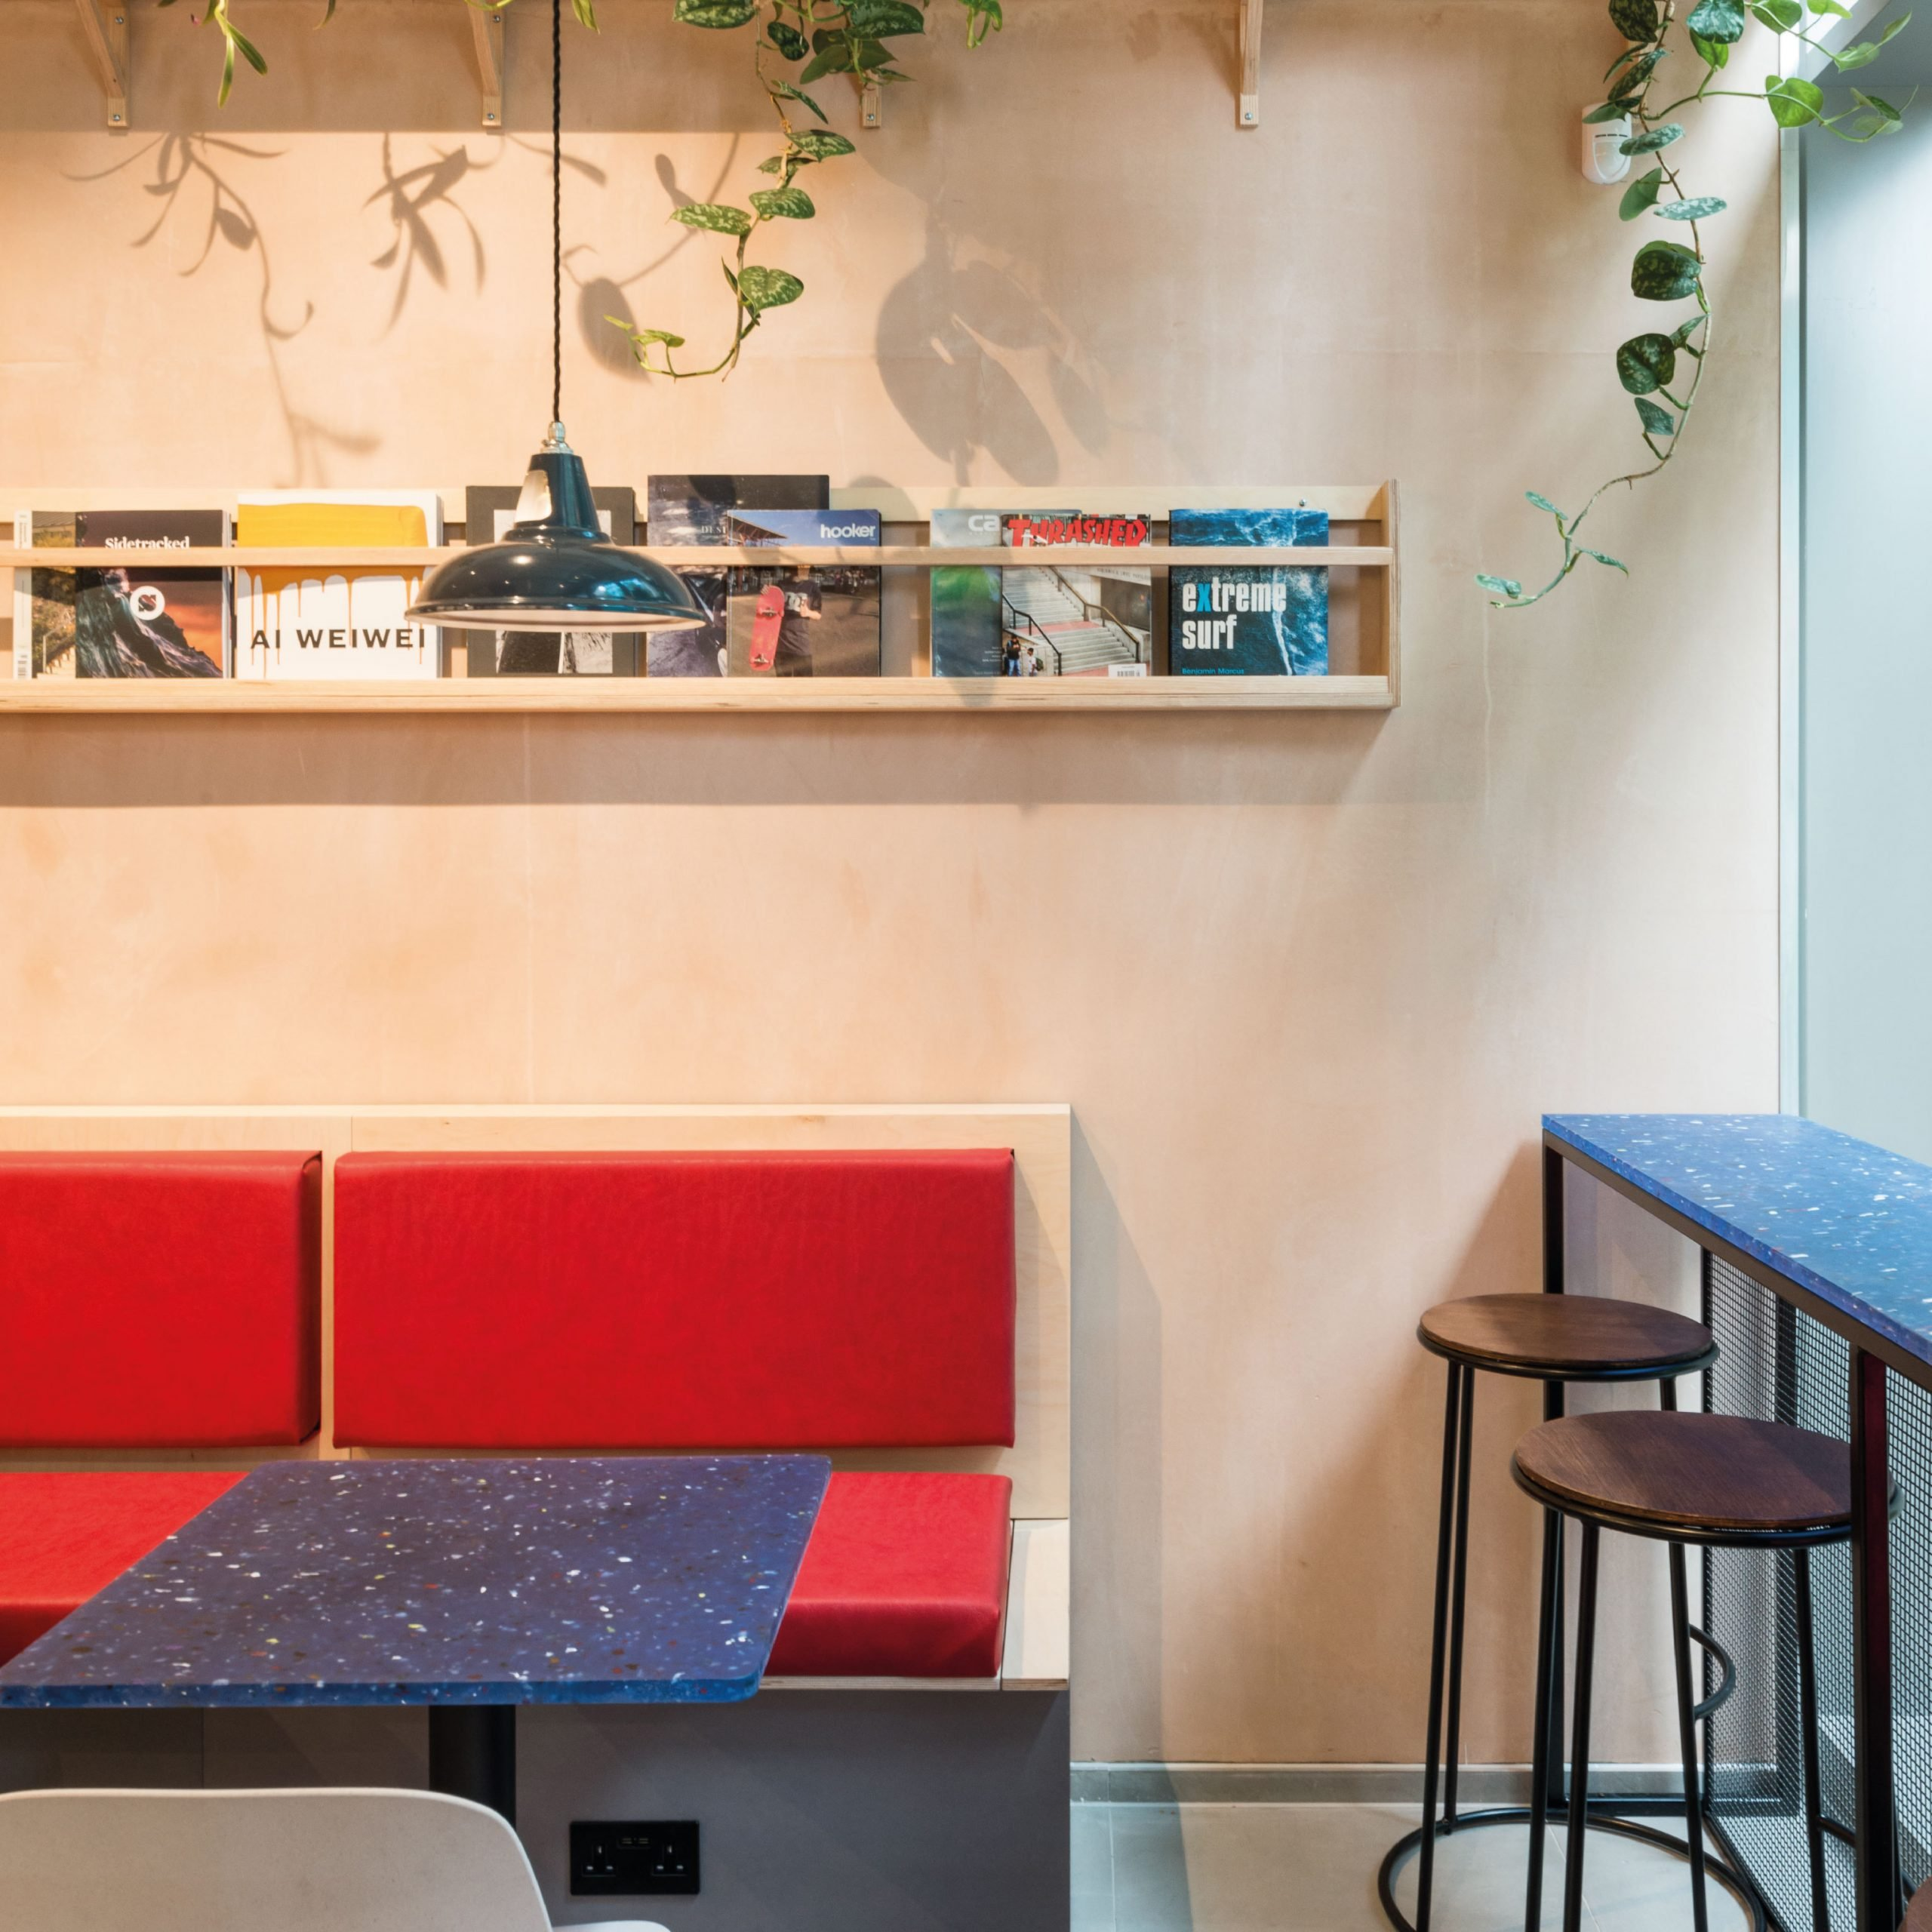 Lords of Poké by Megan Sadler - Interior Design and Creative Direction. Image: French & Tye.